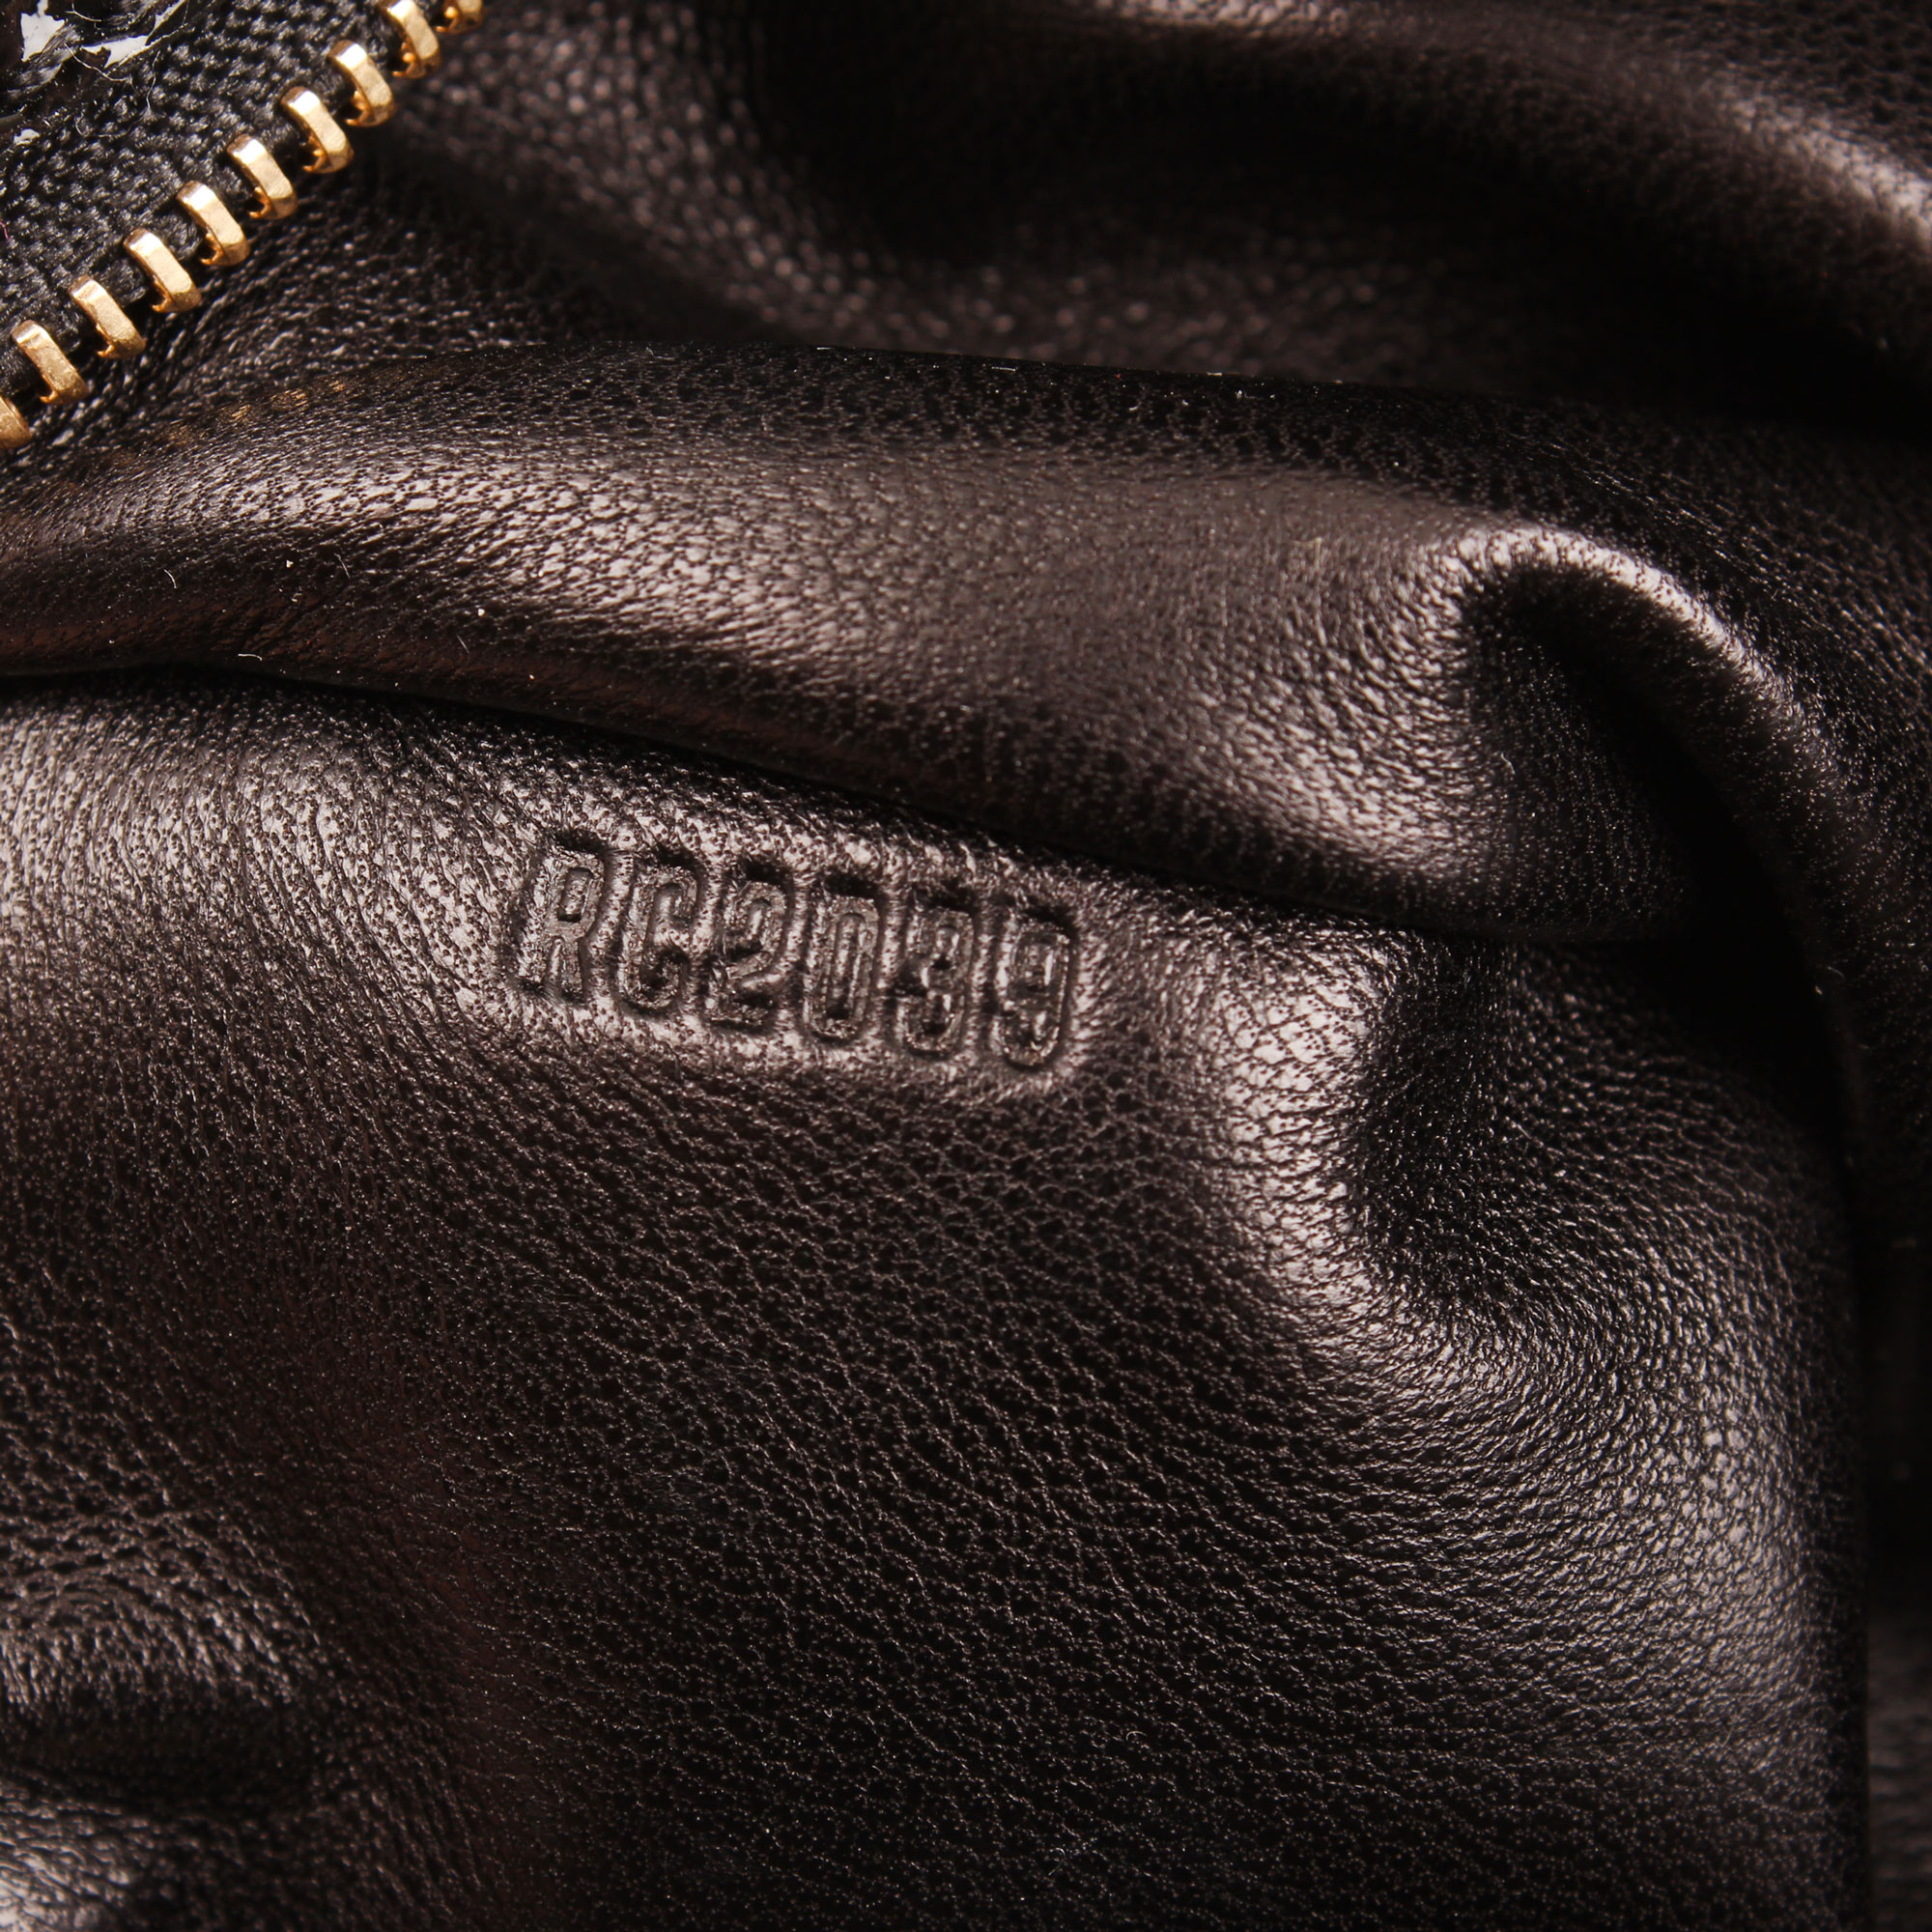 Image of serial number of louis vuitton coquette embossed monogram navy blue fabric leather clutch bag